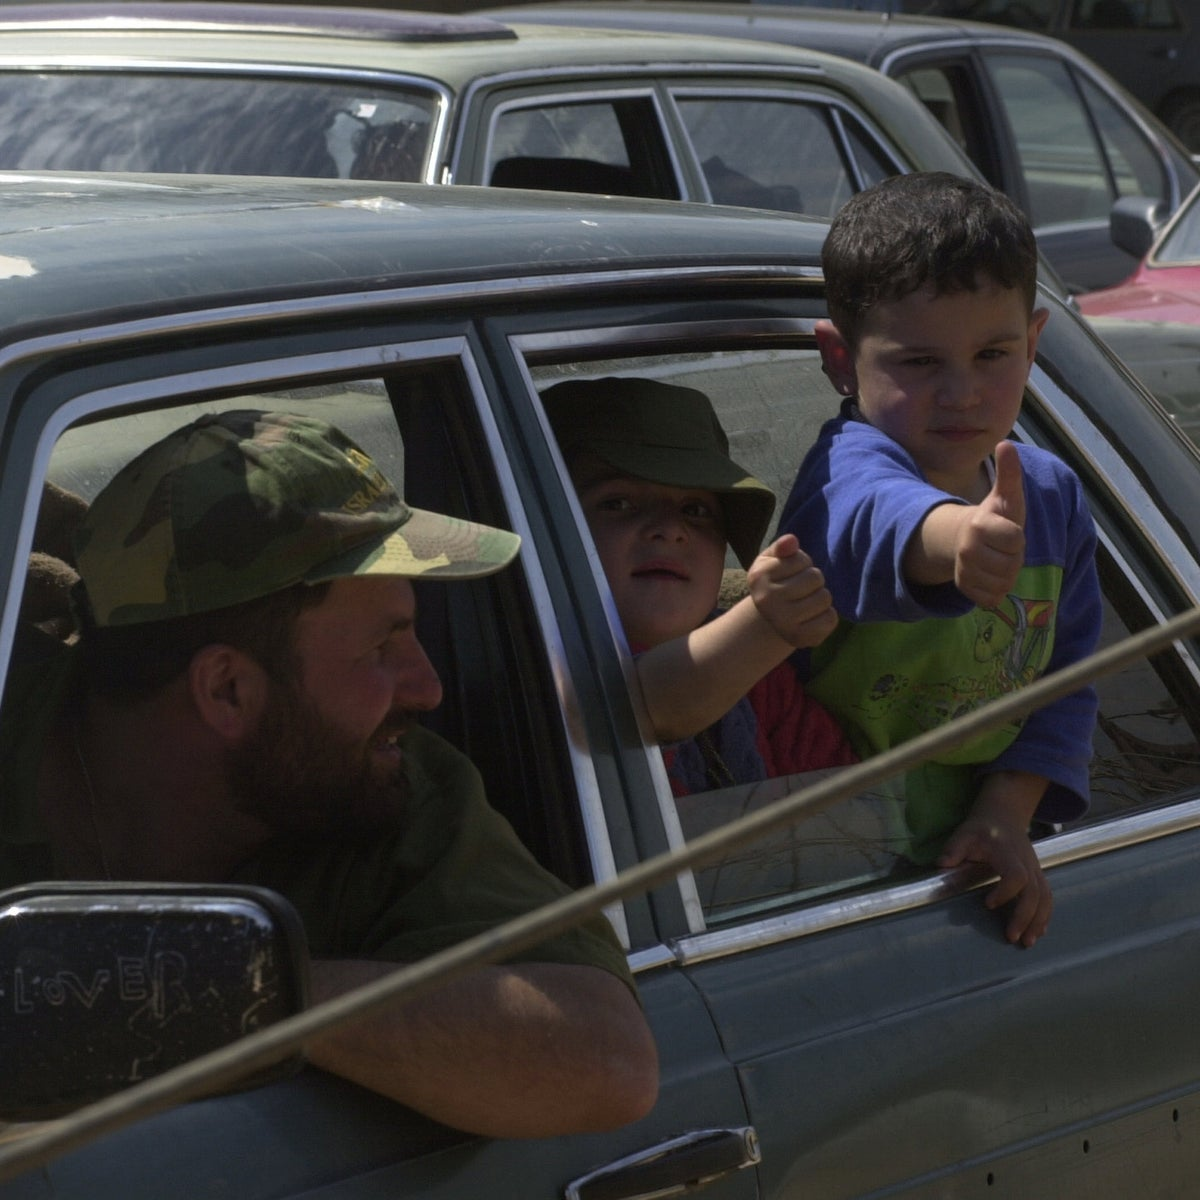 A youngster giving a thumbs-up sign as members of the South Lebanon Army and their families seek to gain entry into Israel, May 23, 2000.